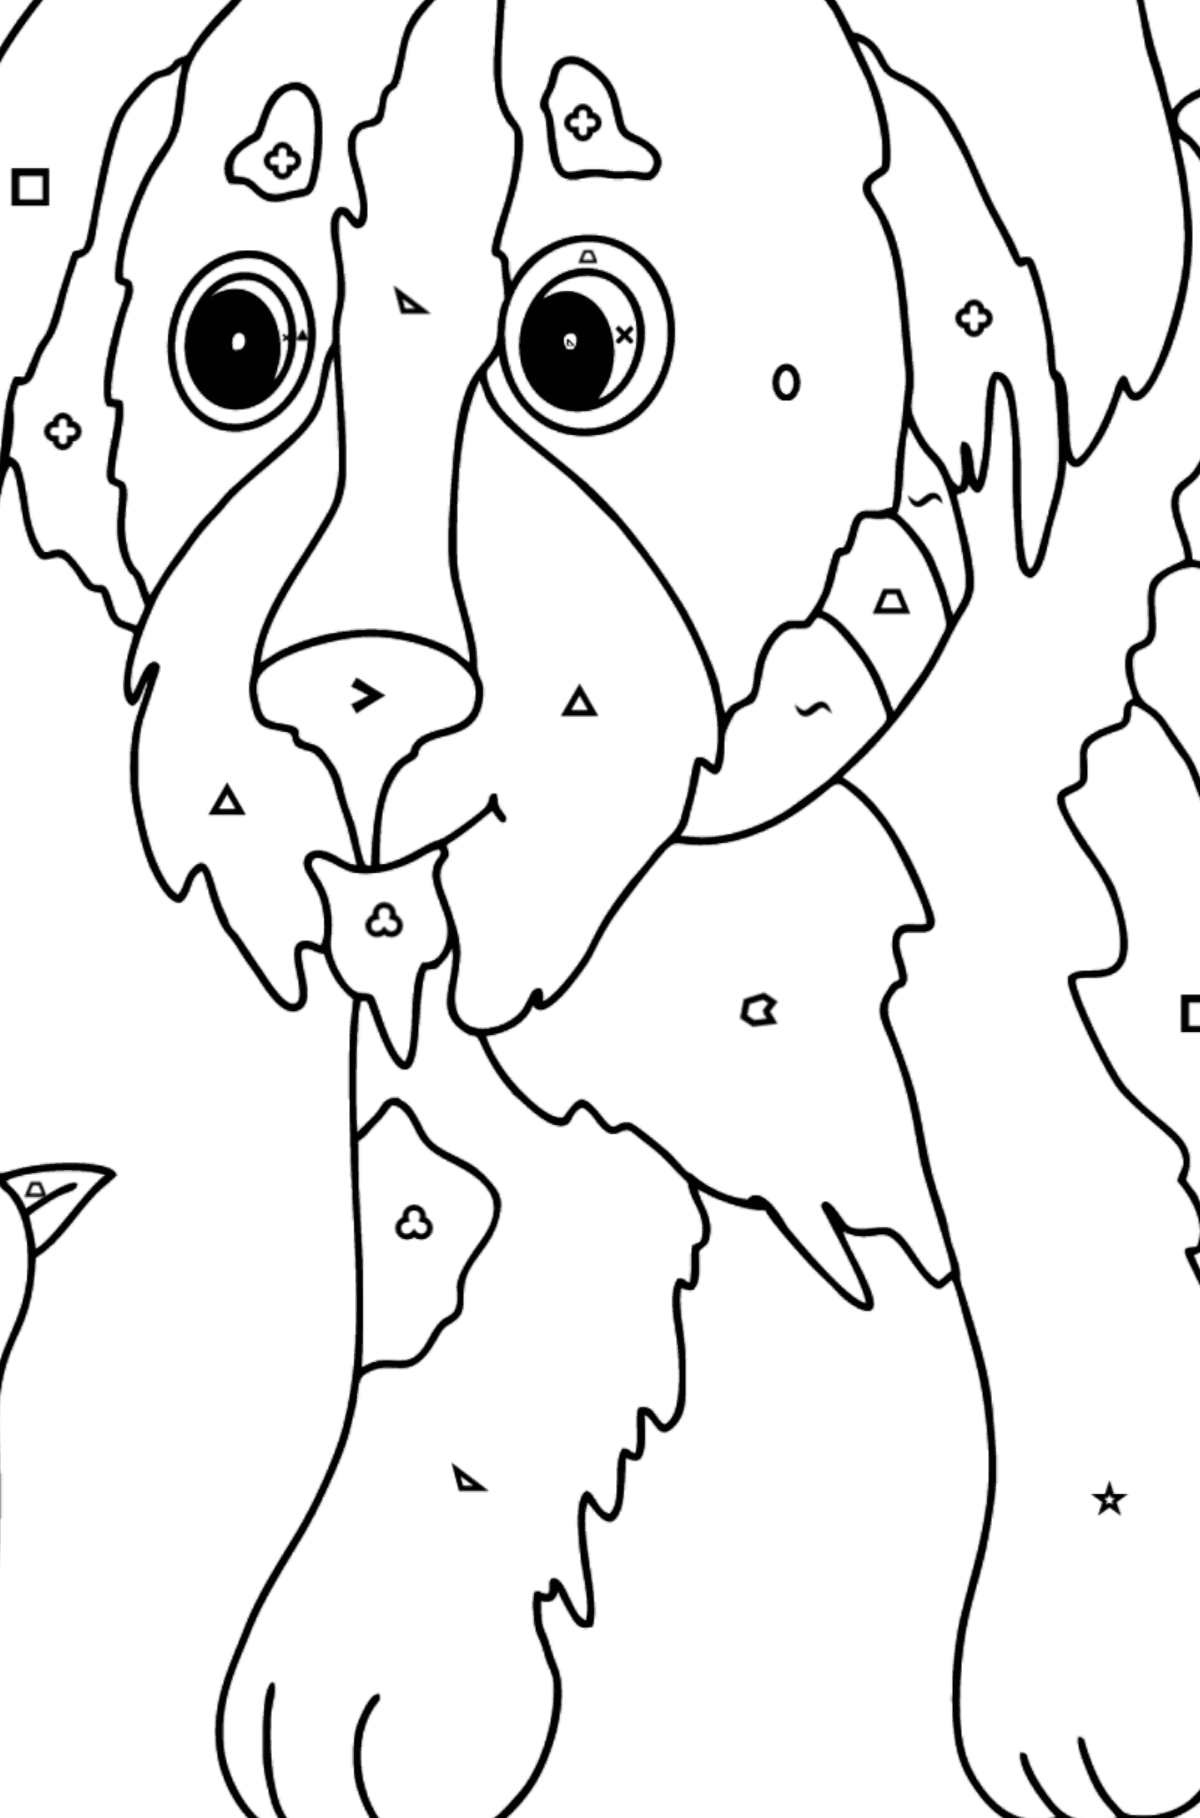 Coloring Page - A Dog is Playing with a Bird - Coloring by Symbols and Geometric Shapes for Kids